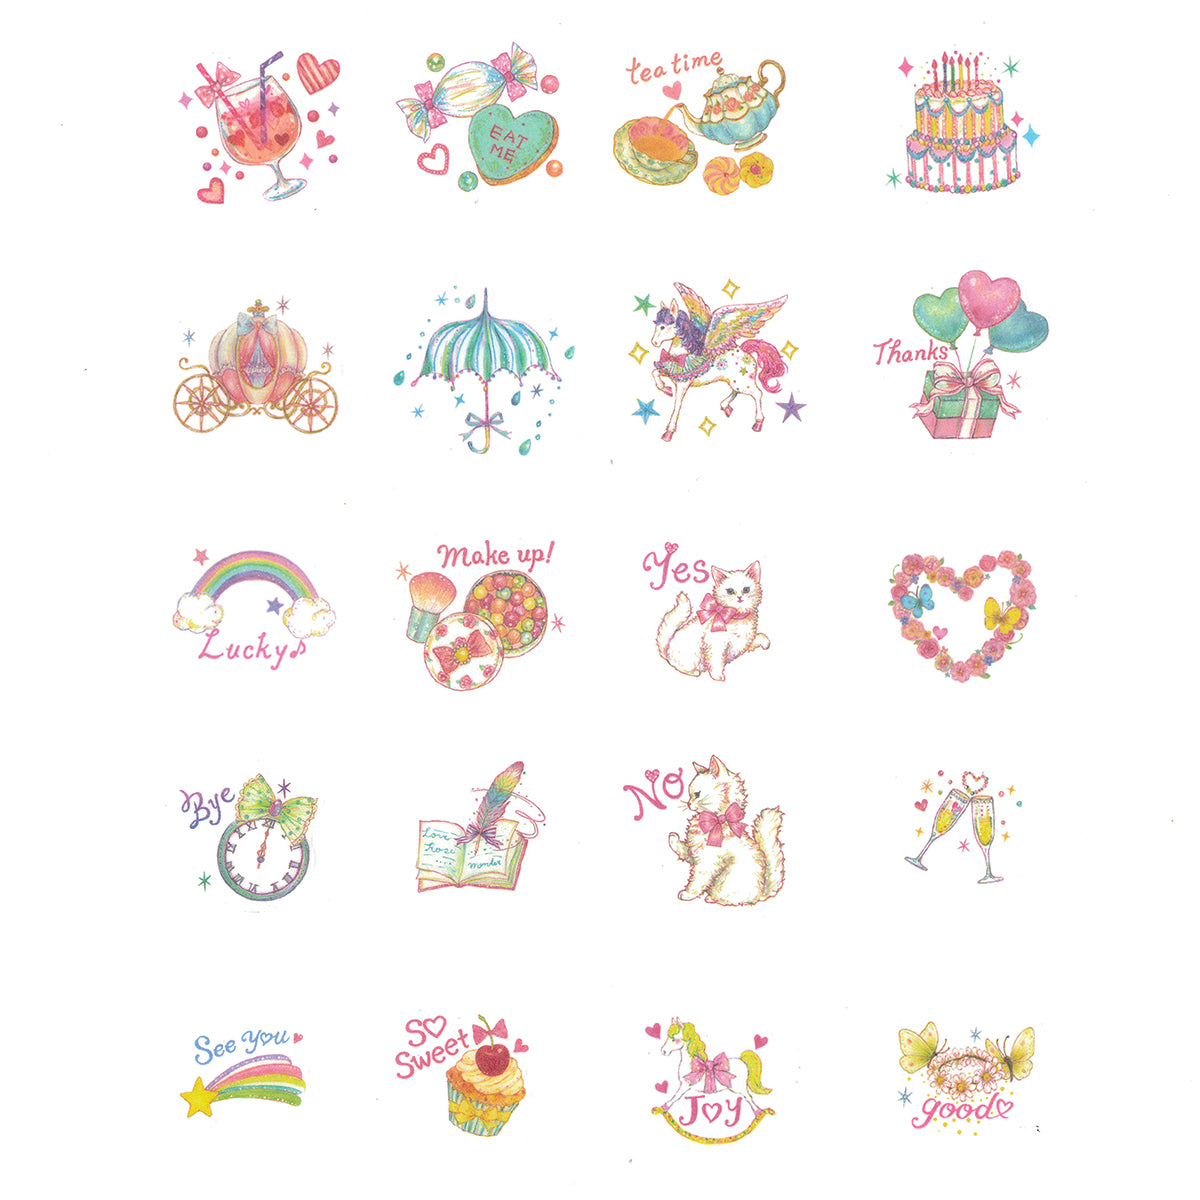 Wrapables Decorative Scrapbooking Washi Stickers, DIY Crafts for Stationery, Diary, Card Making (120 pcs)